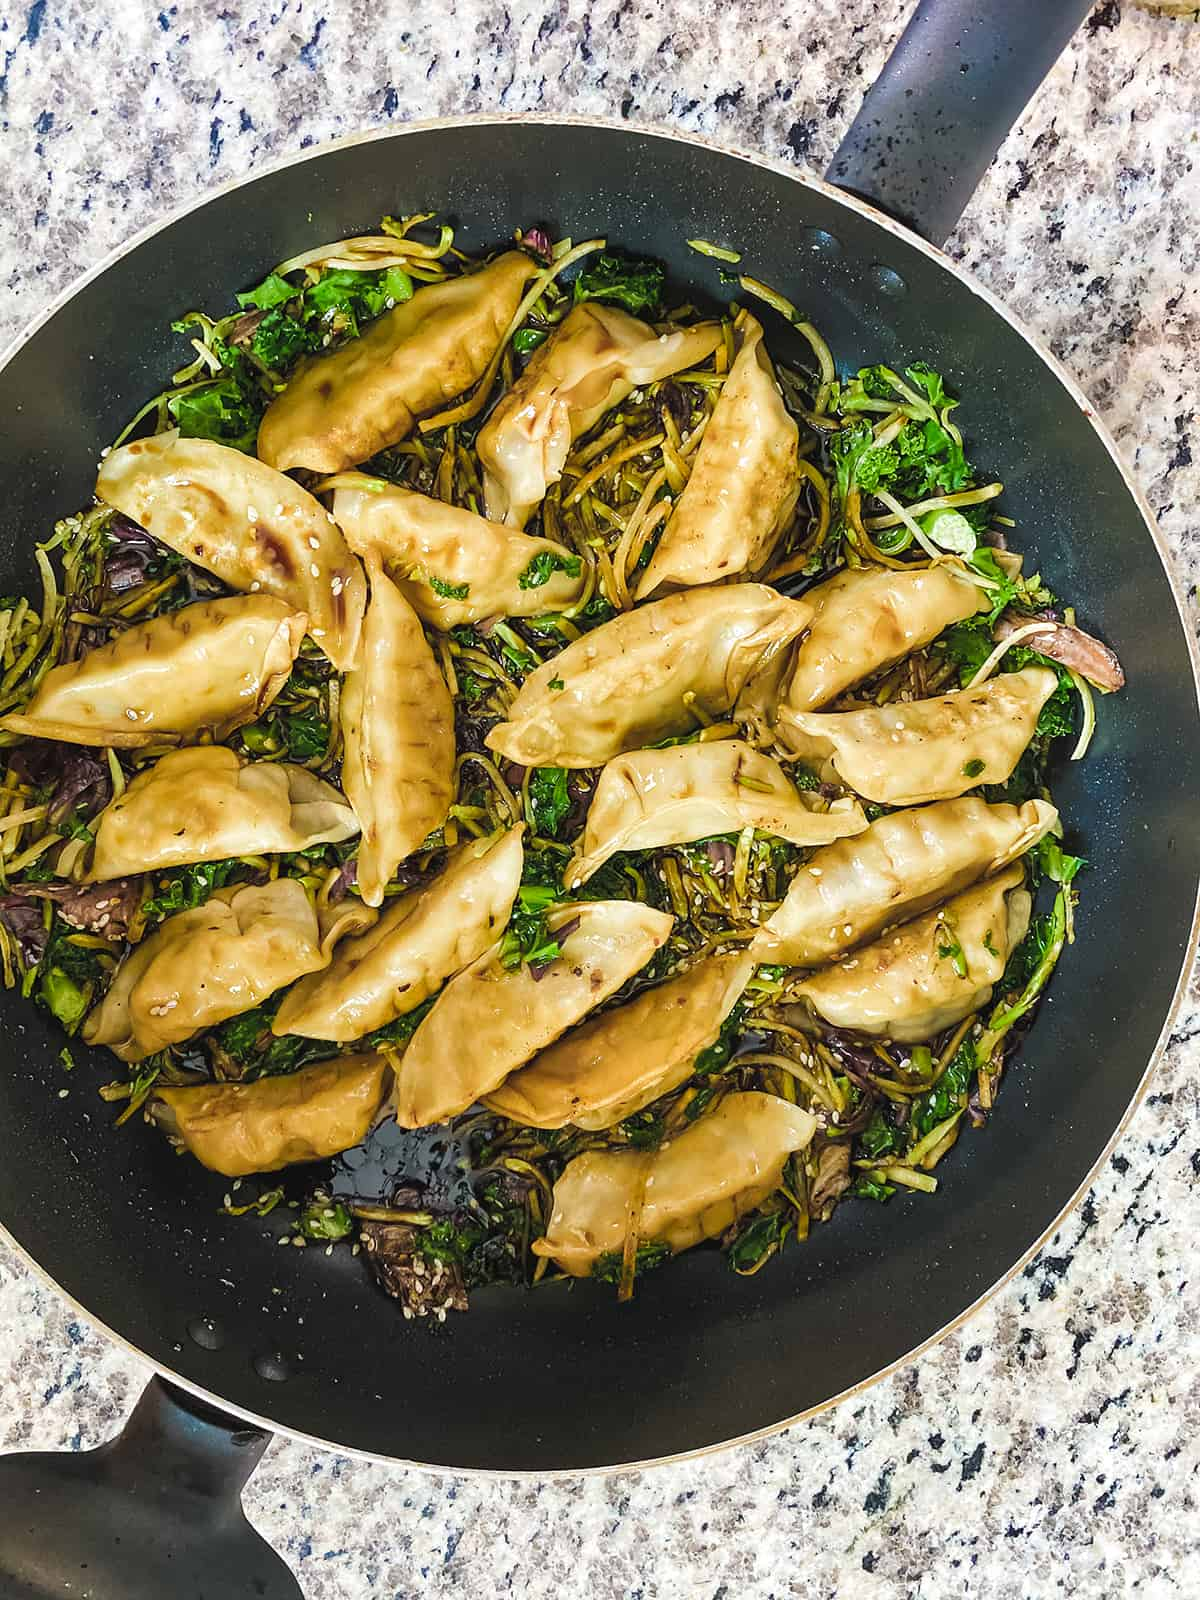 Easy Potstickers with Broccoli Kale Slaw and Spicy Homemade Sauce 3